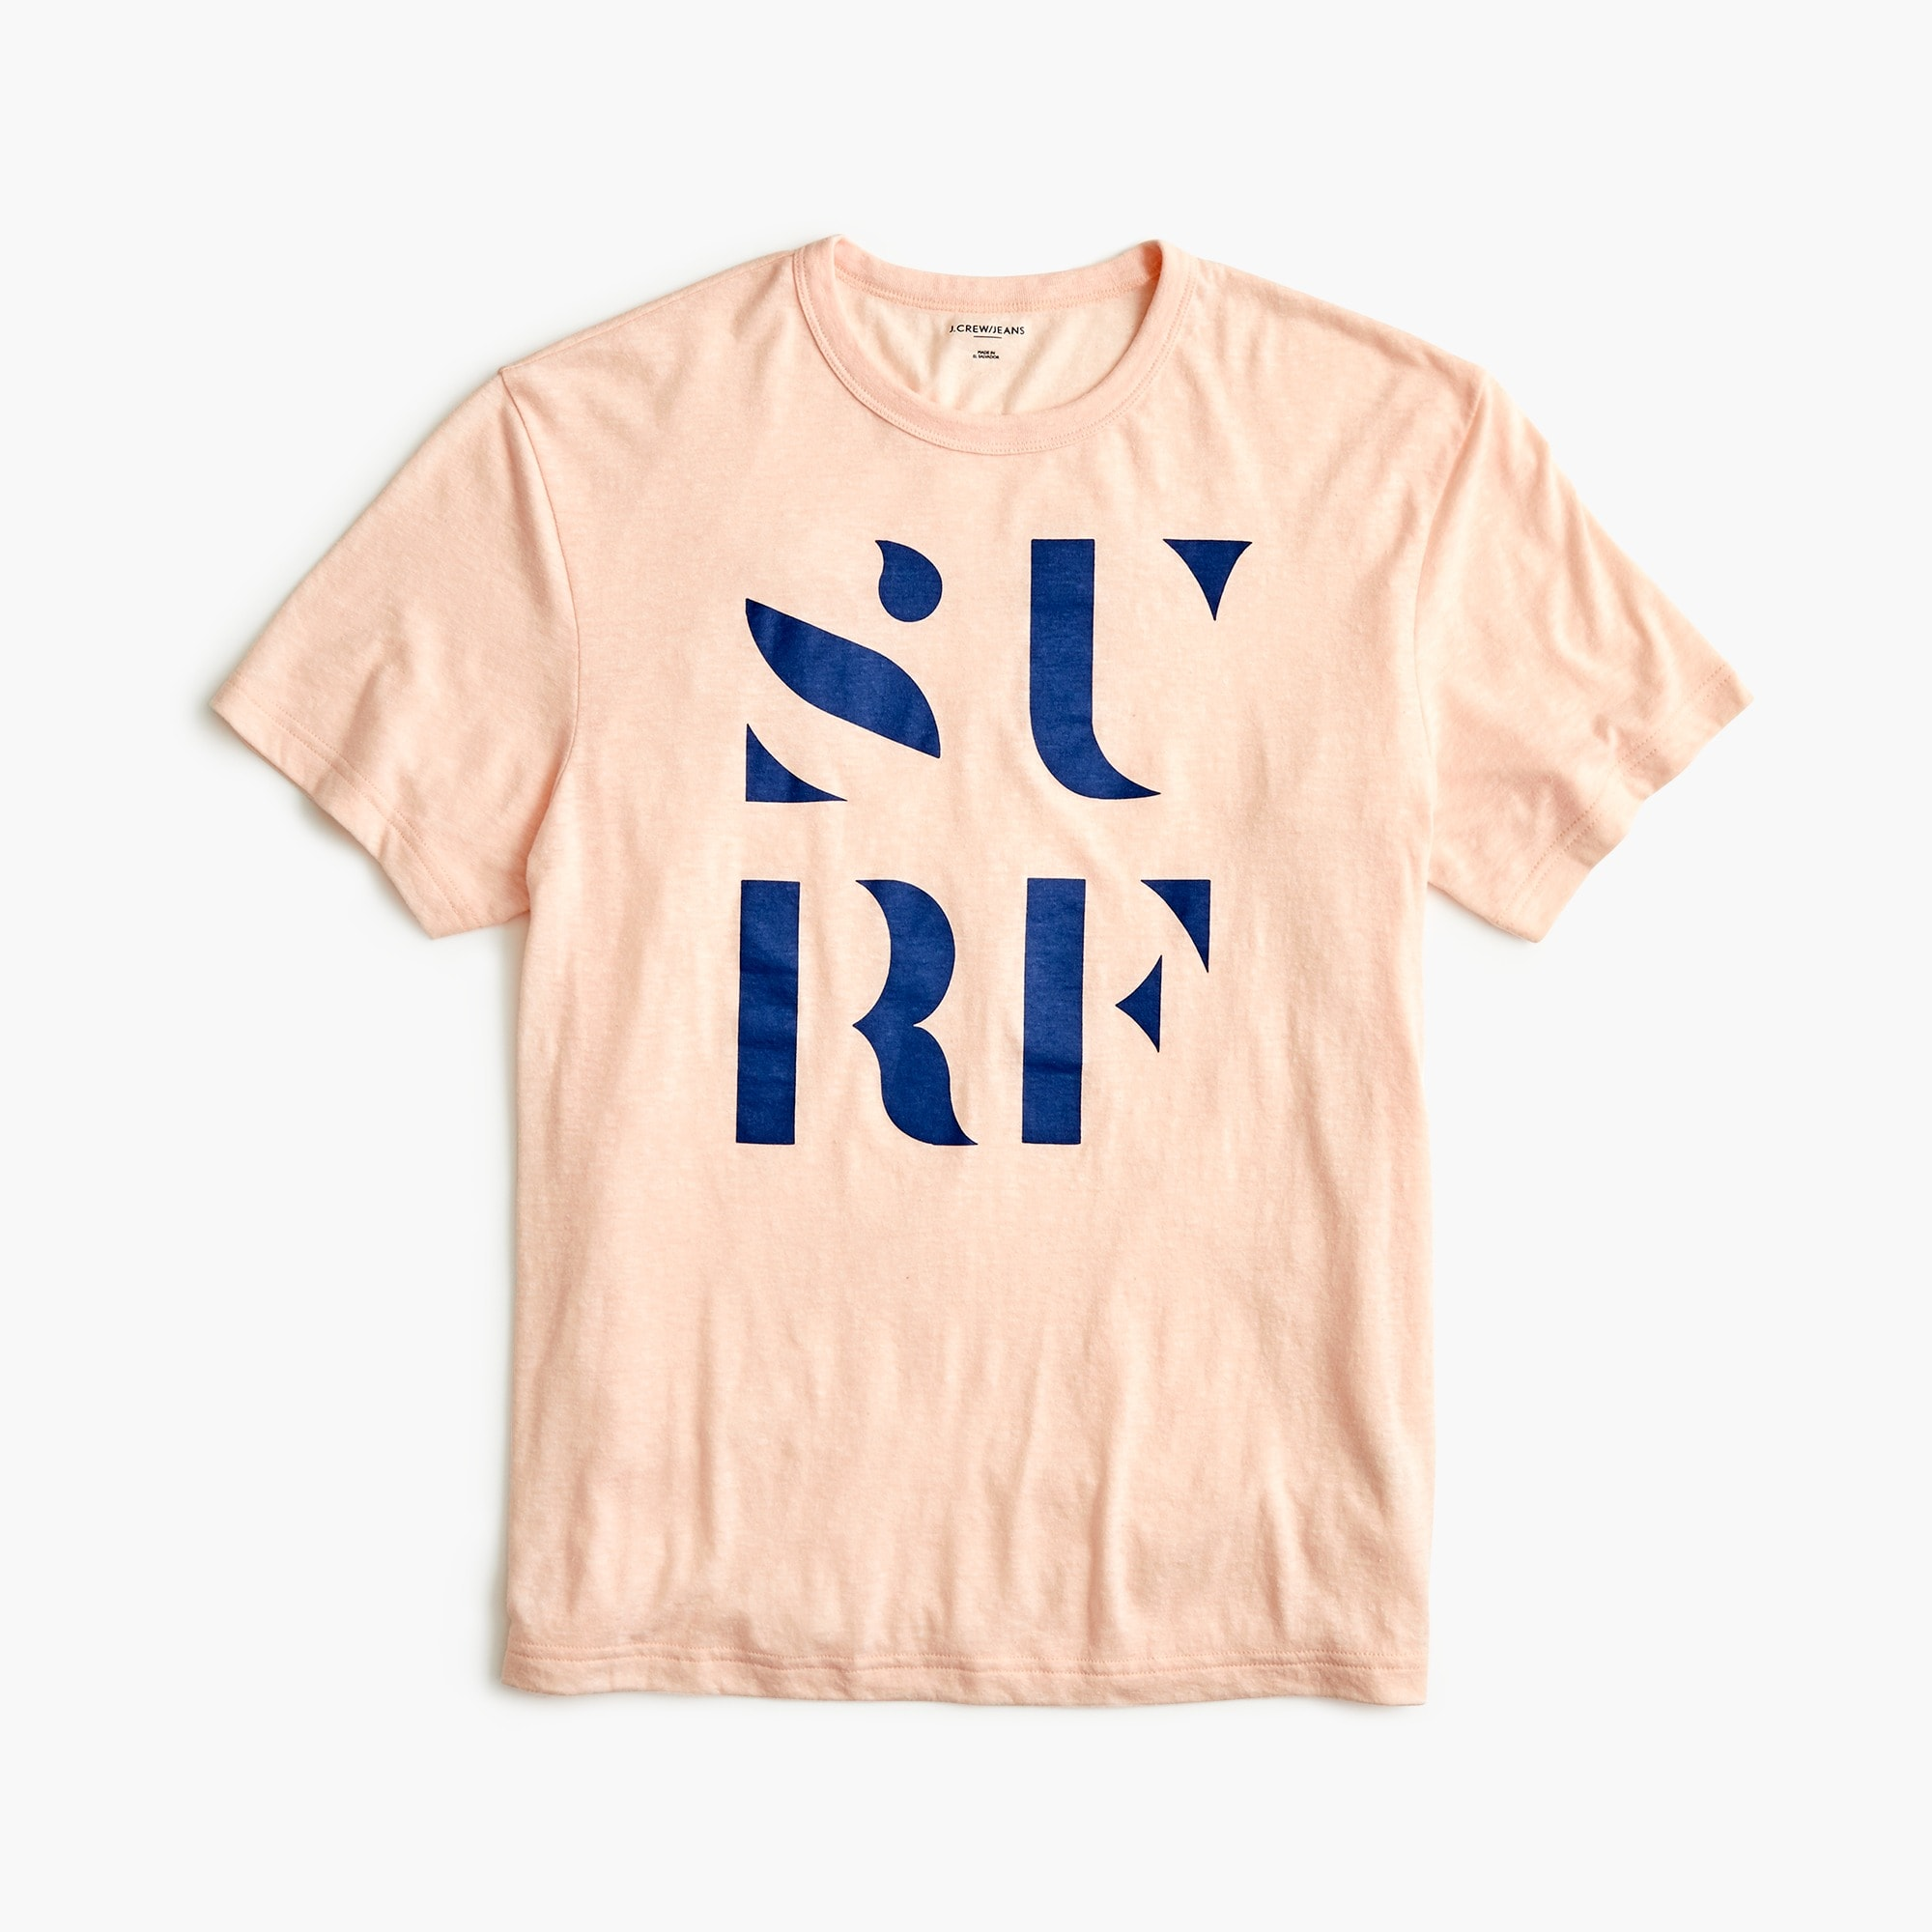 "Tall triblend T-shirt in ""Surf"" graphic"